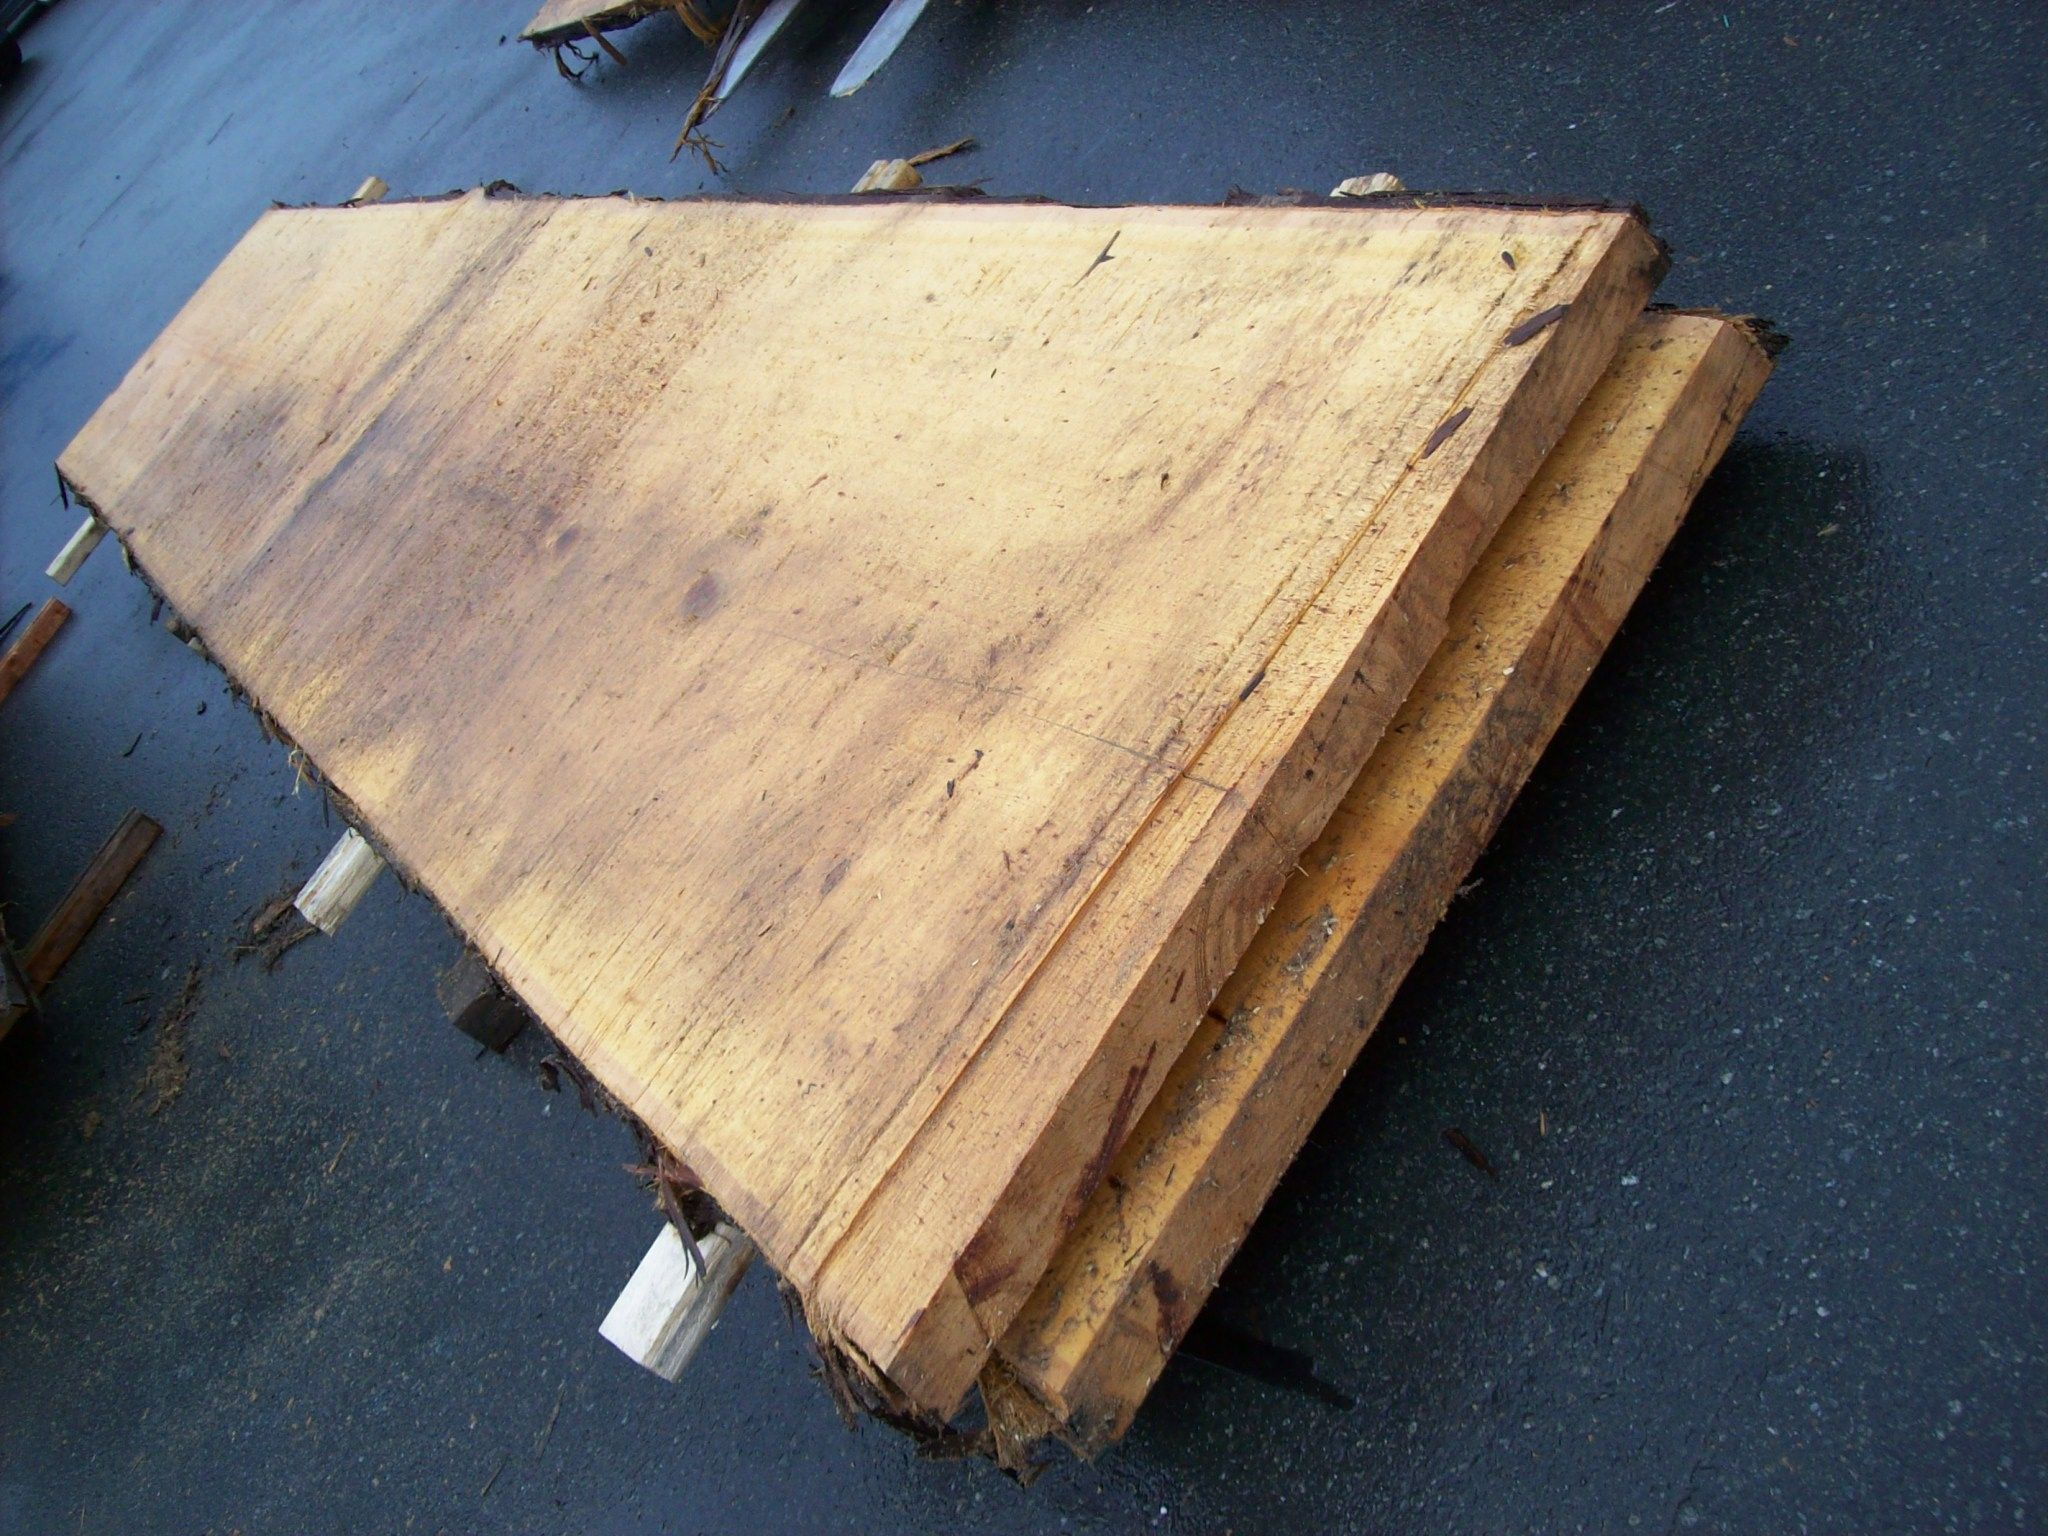 Western red cedar table top western red cedar live edge table top - Yellow Cedar Live Edge Slabs